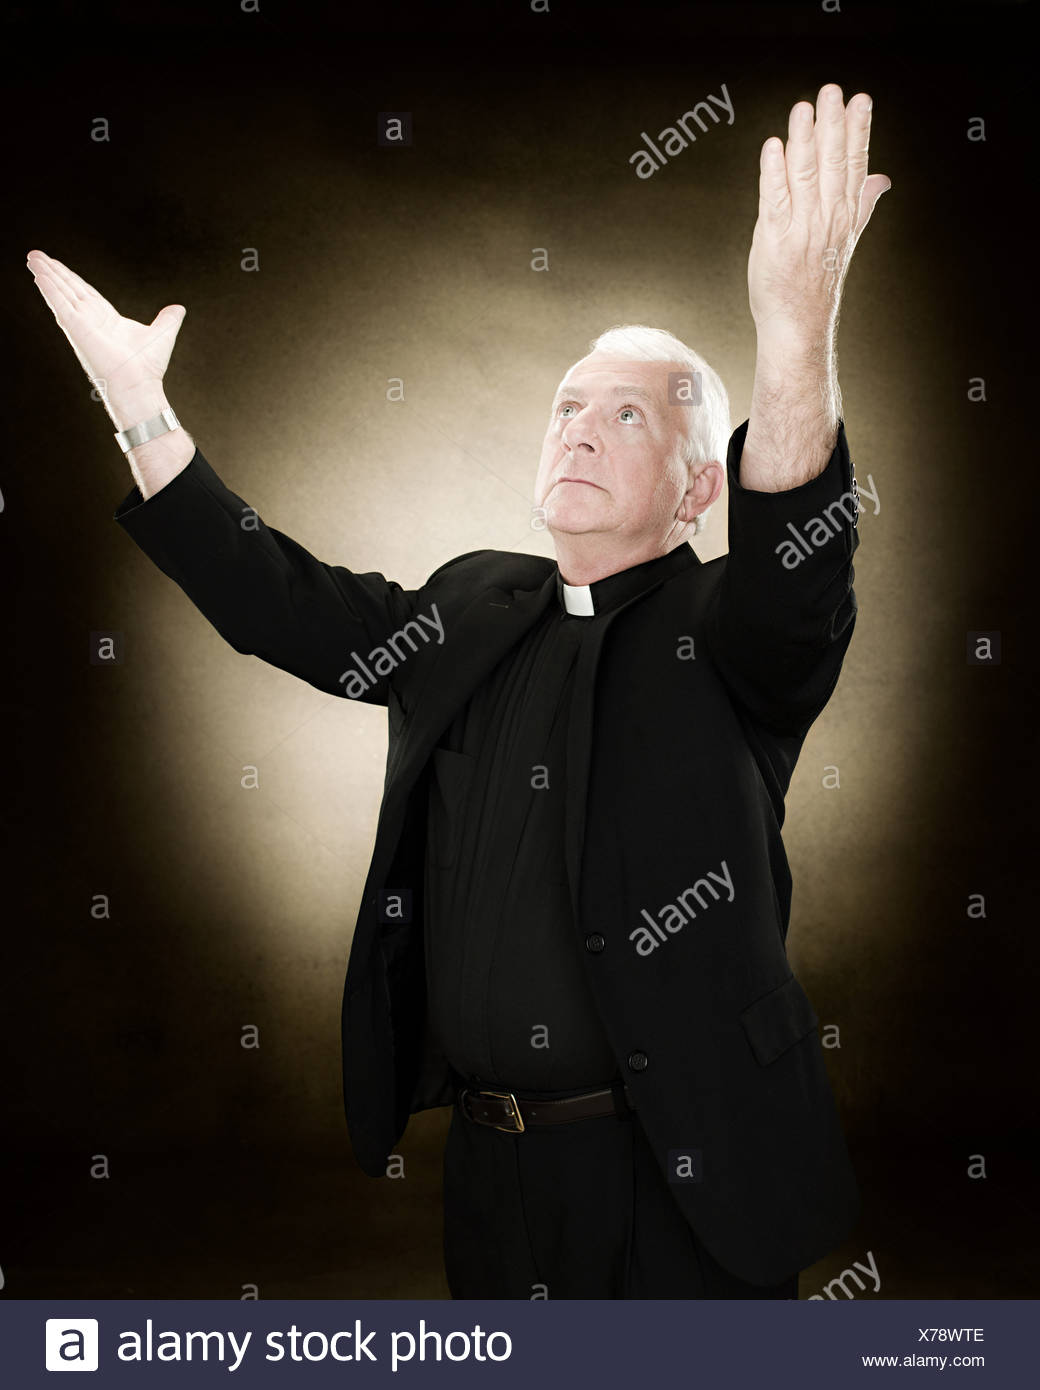 Priest with his arms raised - Stock Image